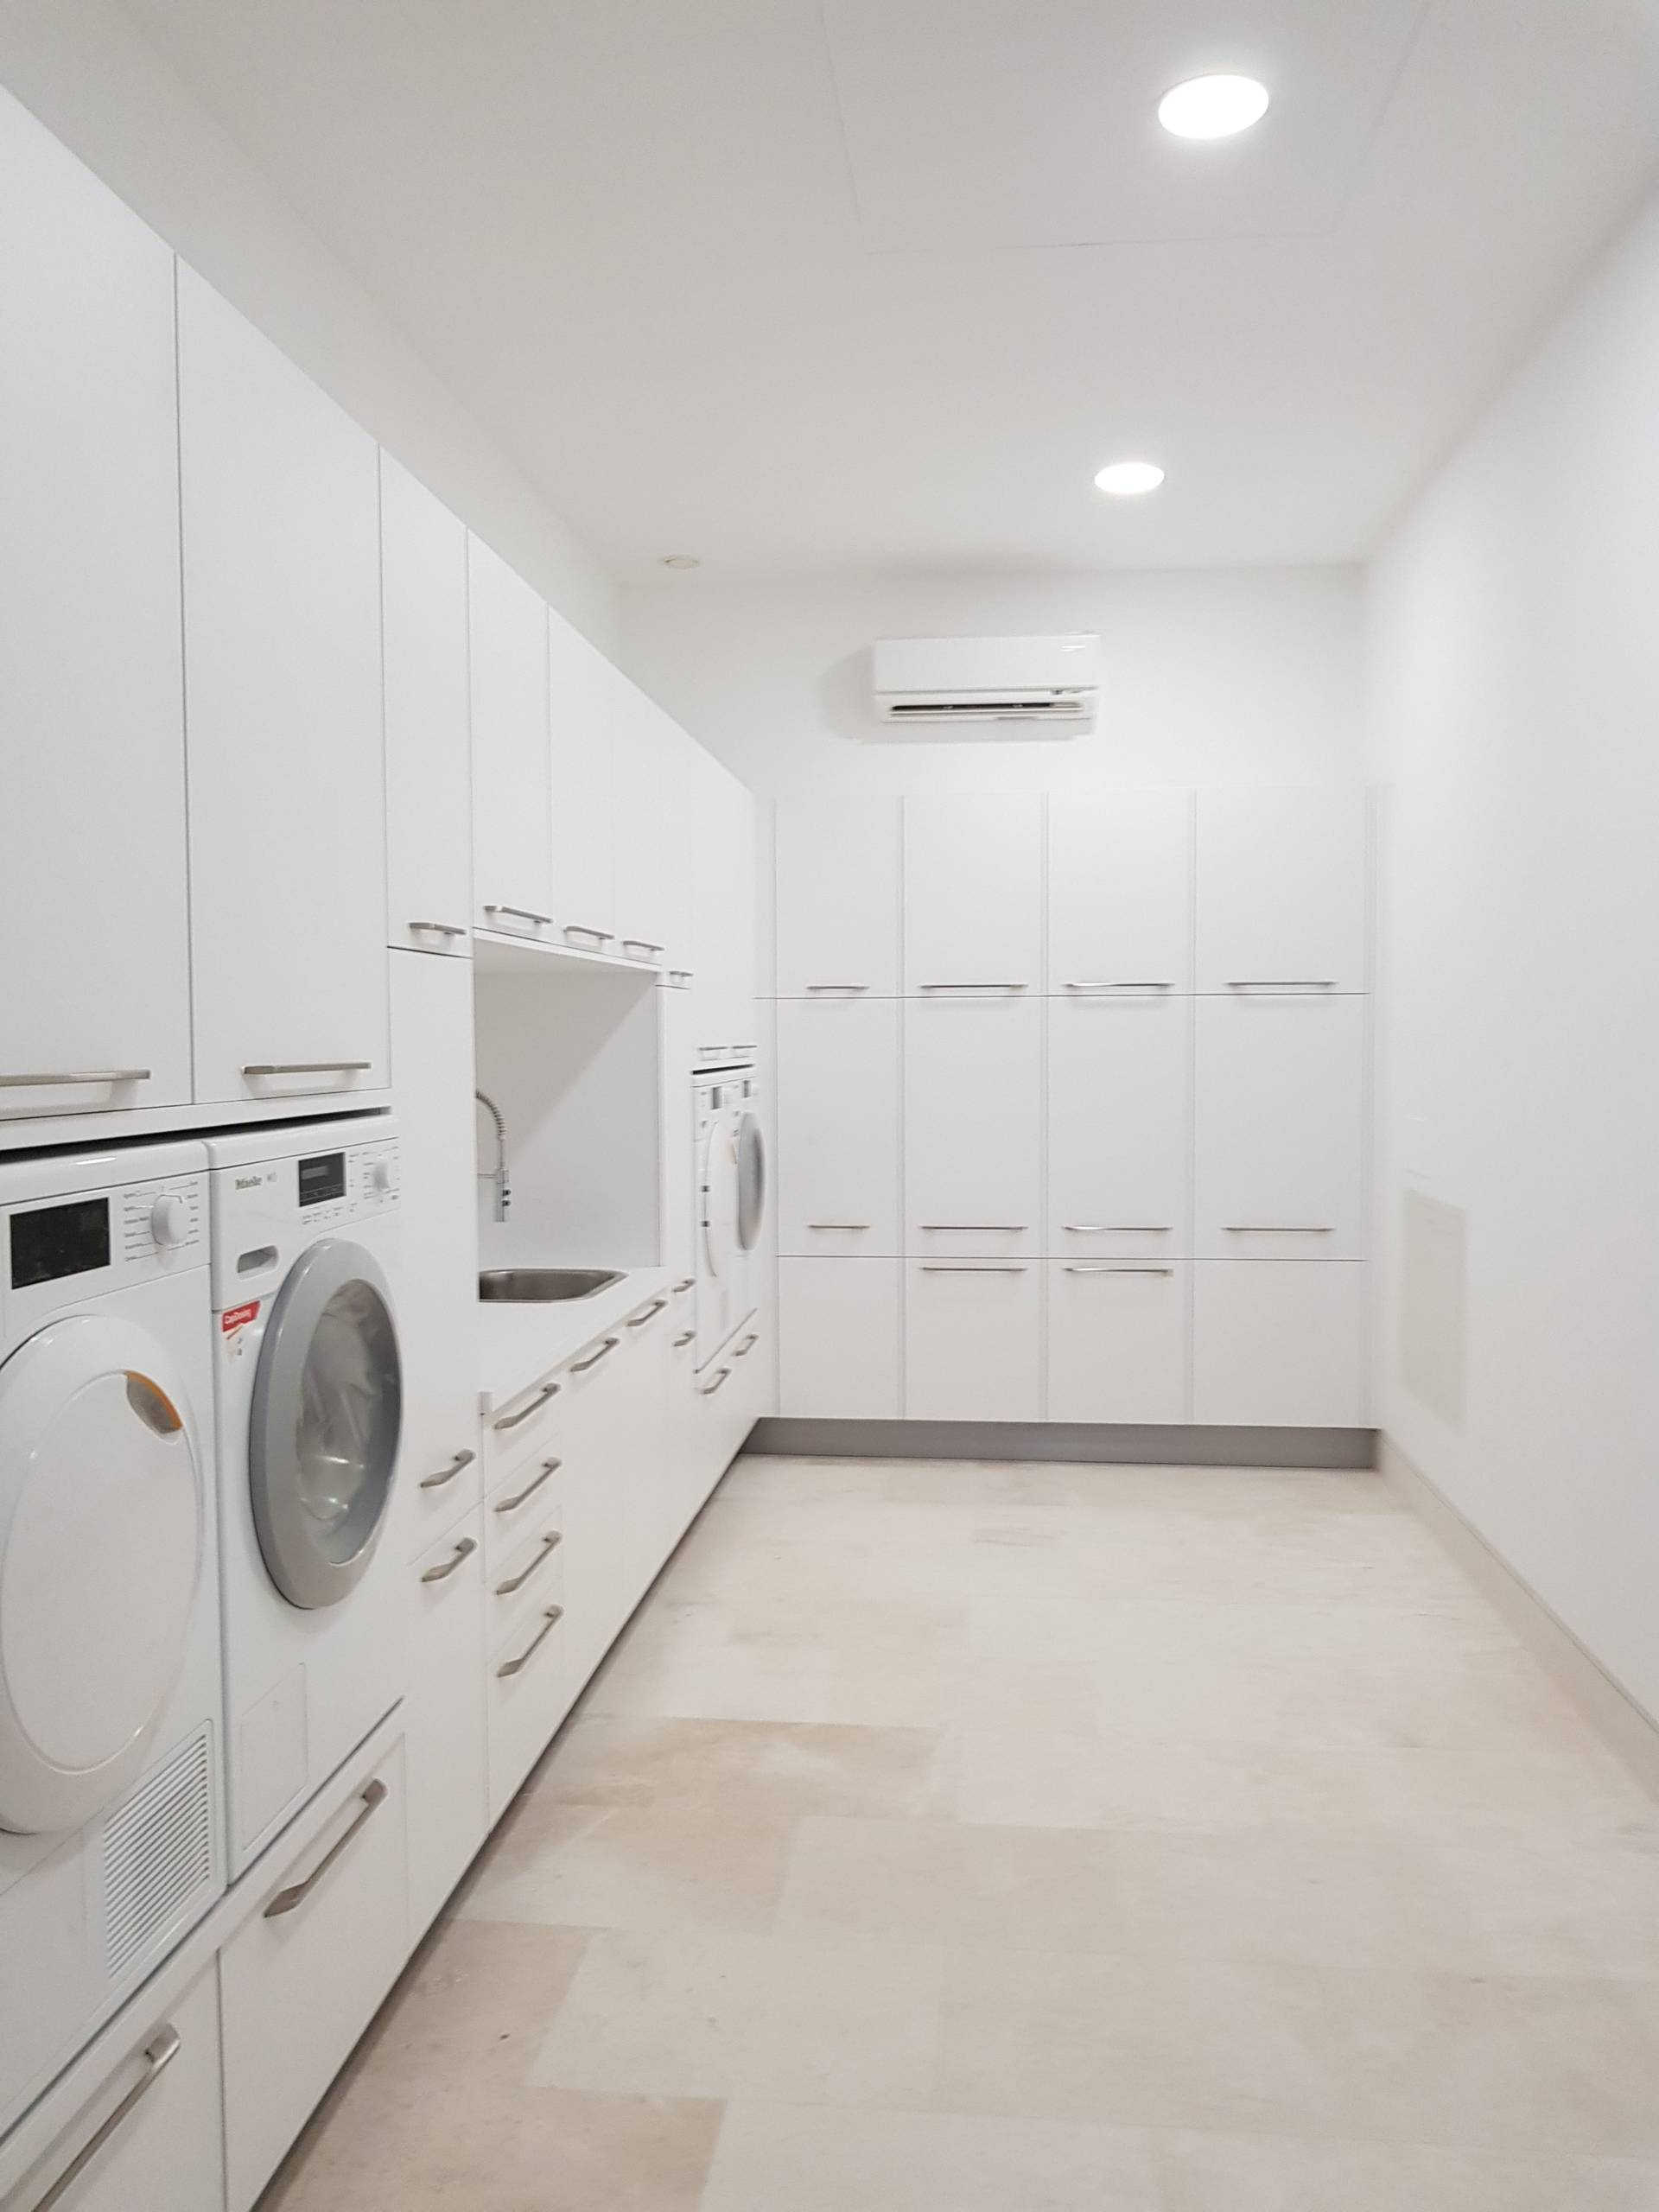 75 Beautiful Laundry Room With Ceramic Backsplash Pictures Ideas December 2020 Houzz